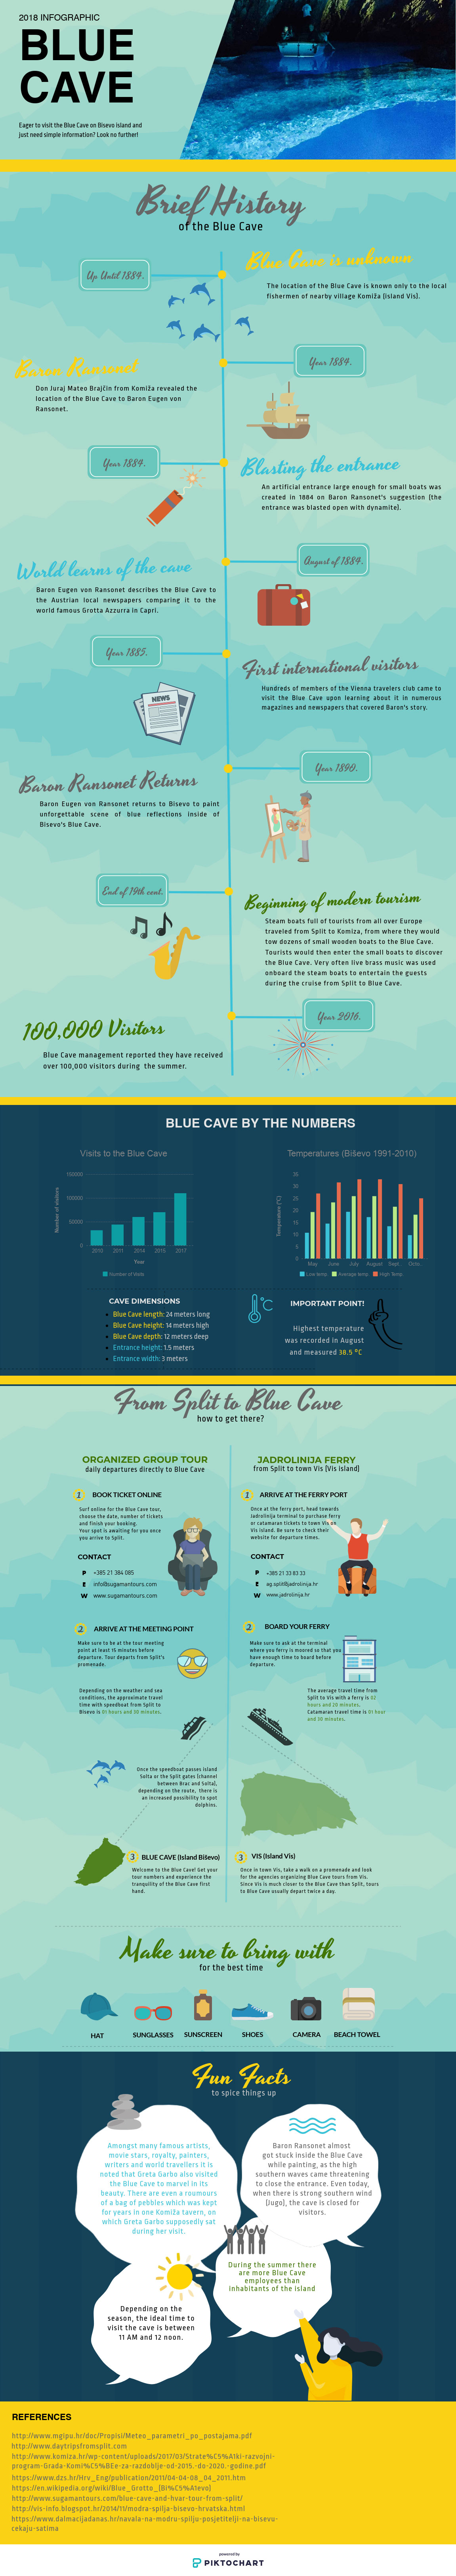 Infographic on Blue Cave in Croatia (Bisevo island), history, how to arrive, interesting facts, blue cave by the numbers